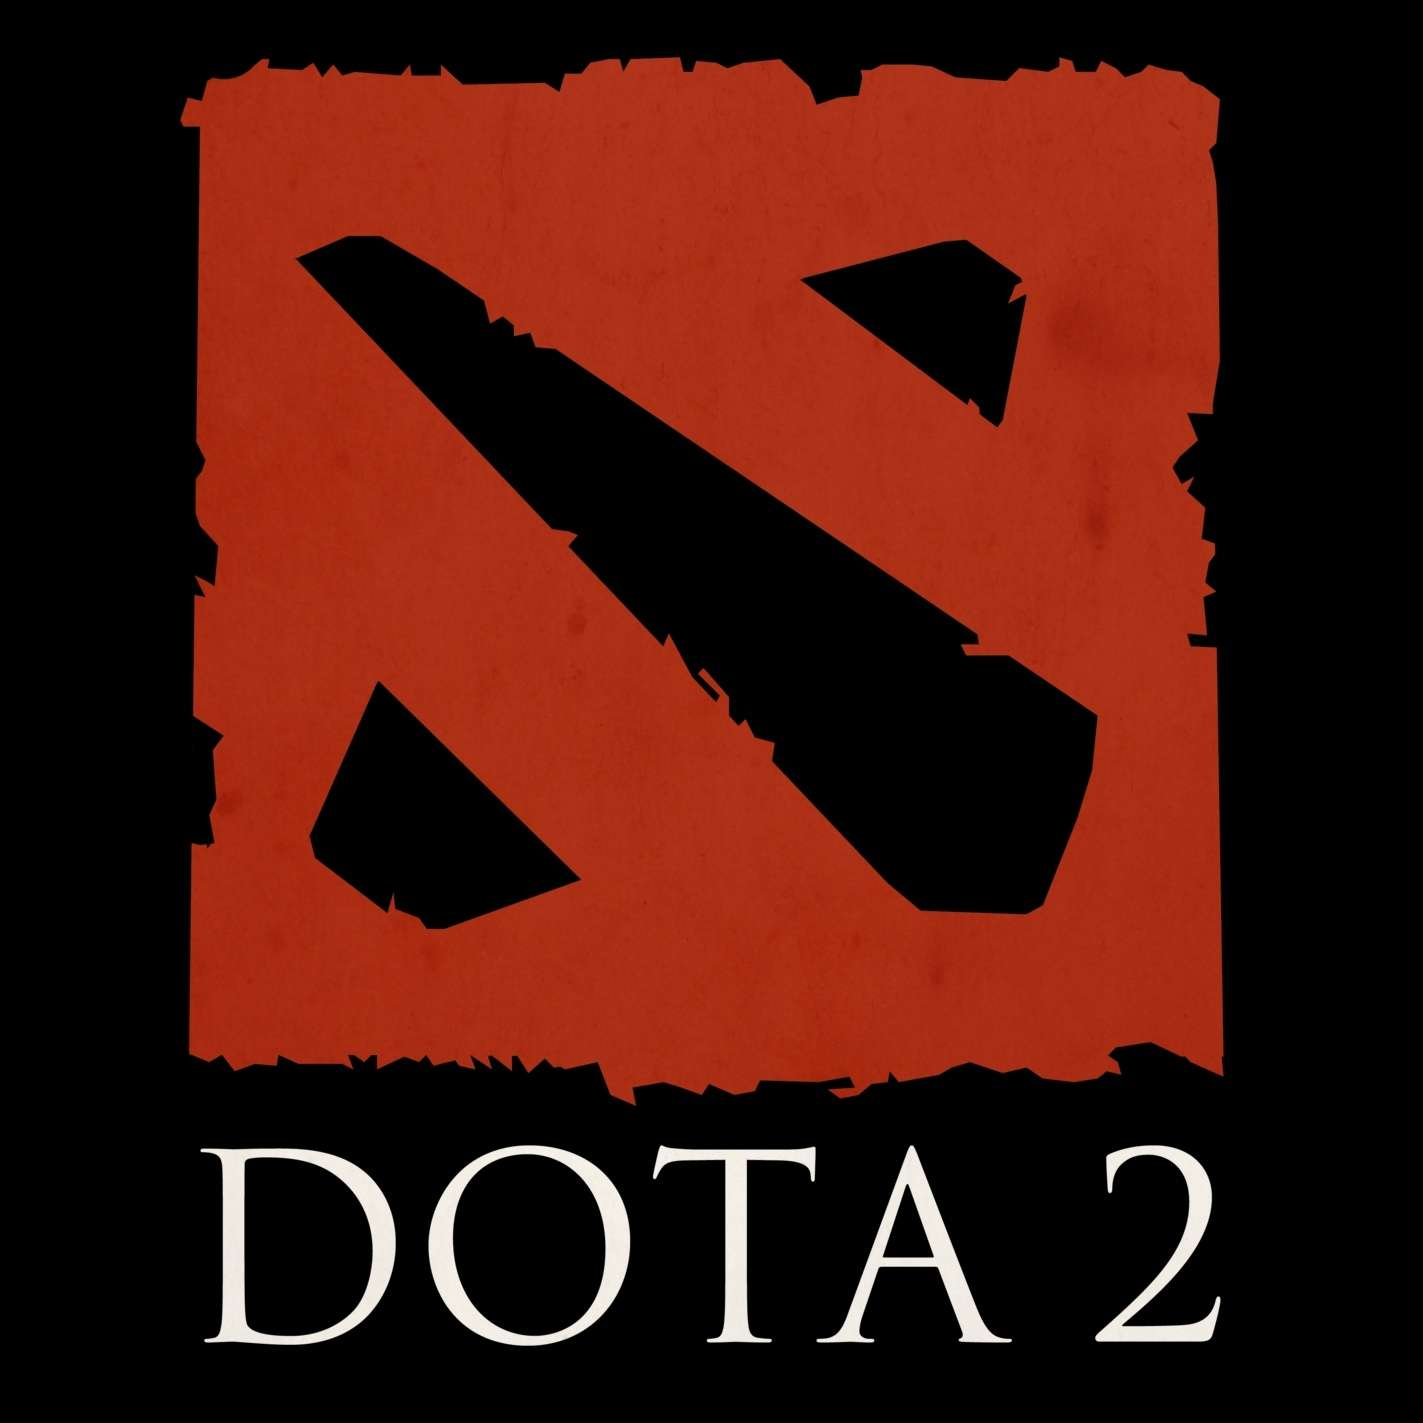 dota 2 logo vector eps free download logo icons clipart